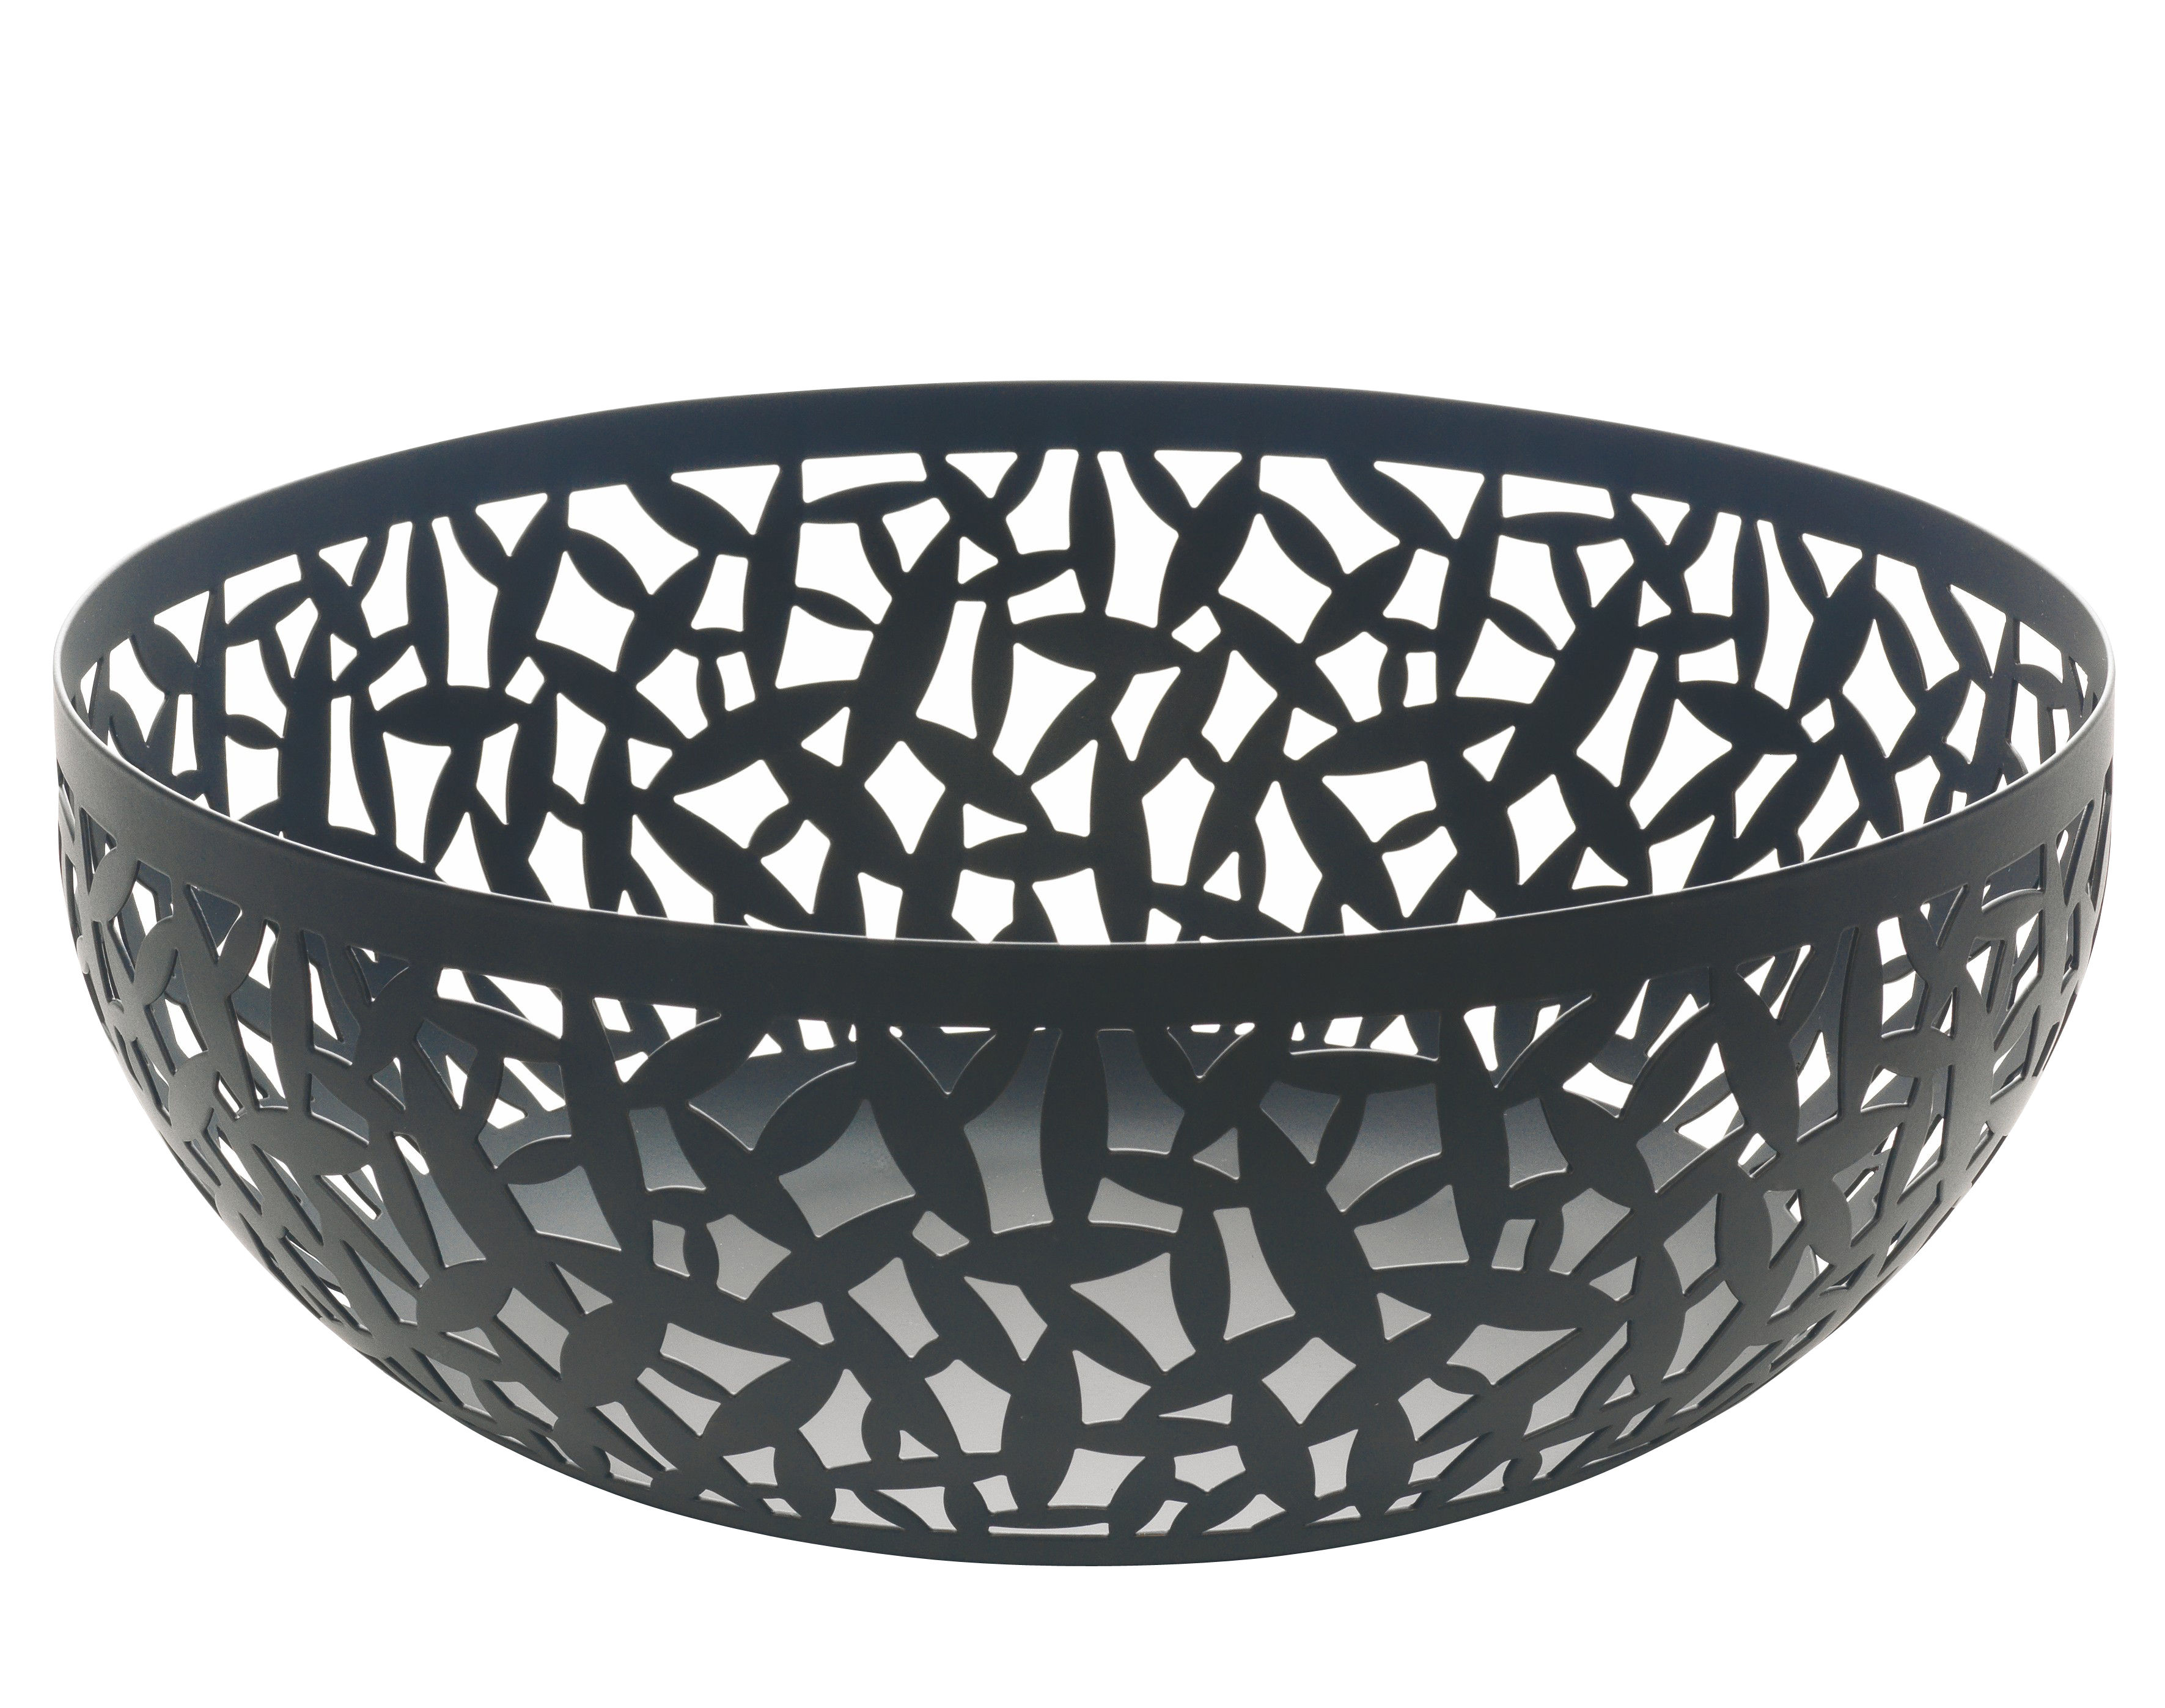 Tableware - Fruit Bowls & Centrepieces - Cactus! Basket - Ø 29 cm by Alessi - Ø 29 cm - Black - Stainless steel epoxy coloration resin